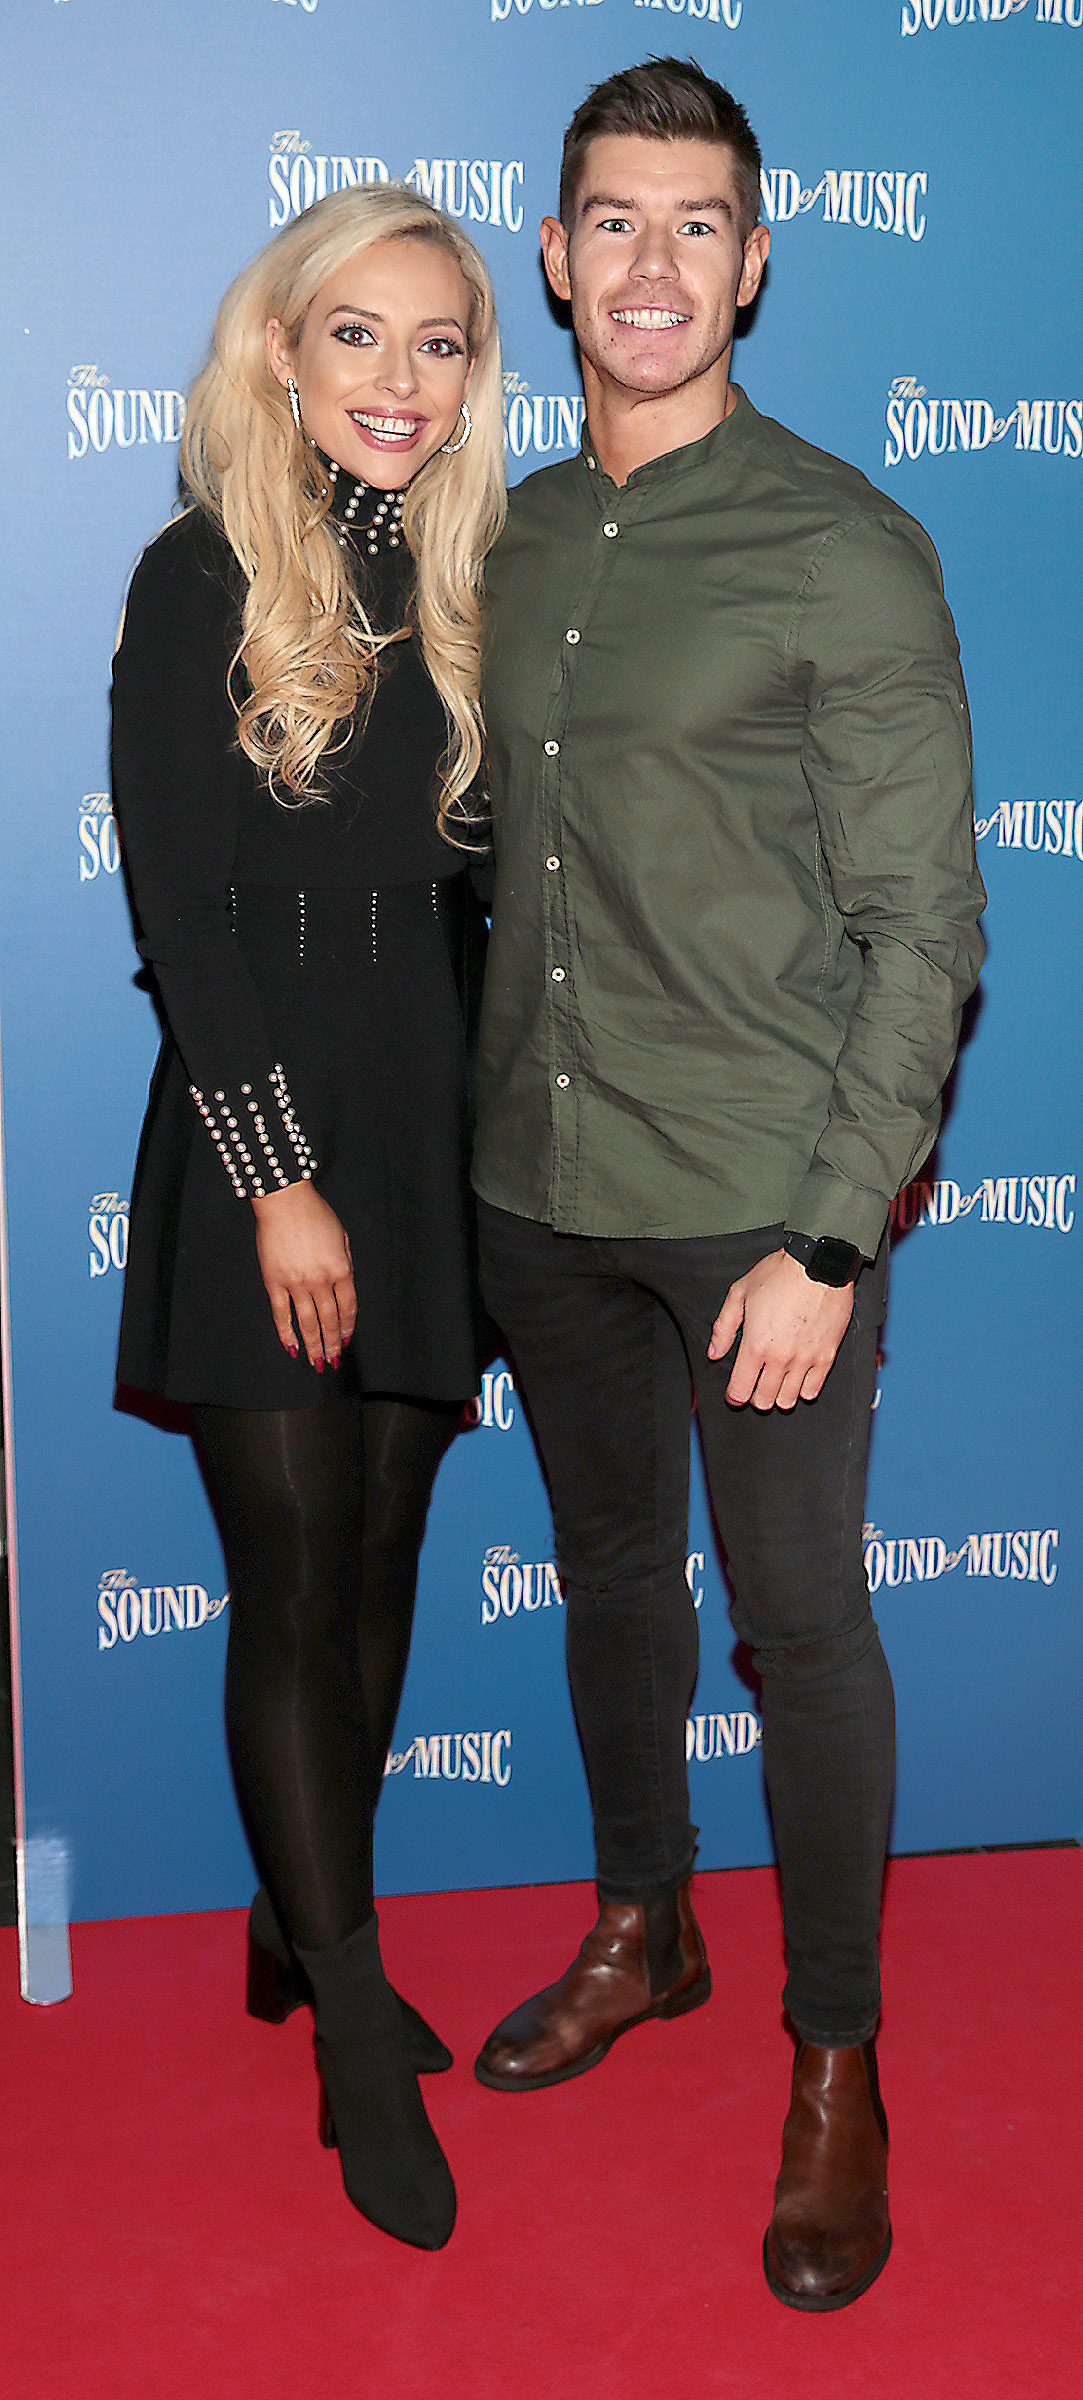 Mikaela O Neill and Ryan Andrews  pictured at the opening night of The Sound of Music at the Bord Gais Energy Theatre, Dublin. Pic Brian McEvoy